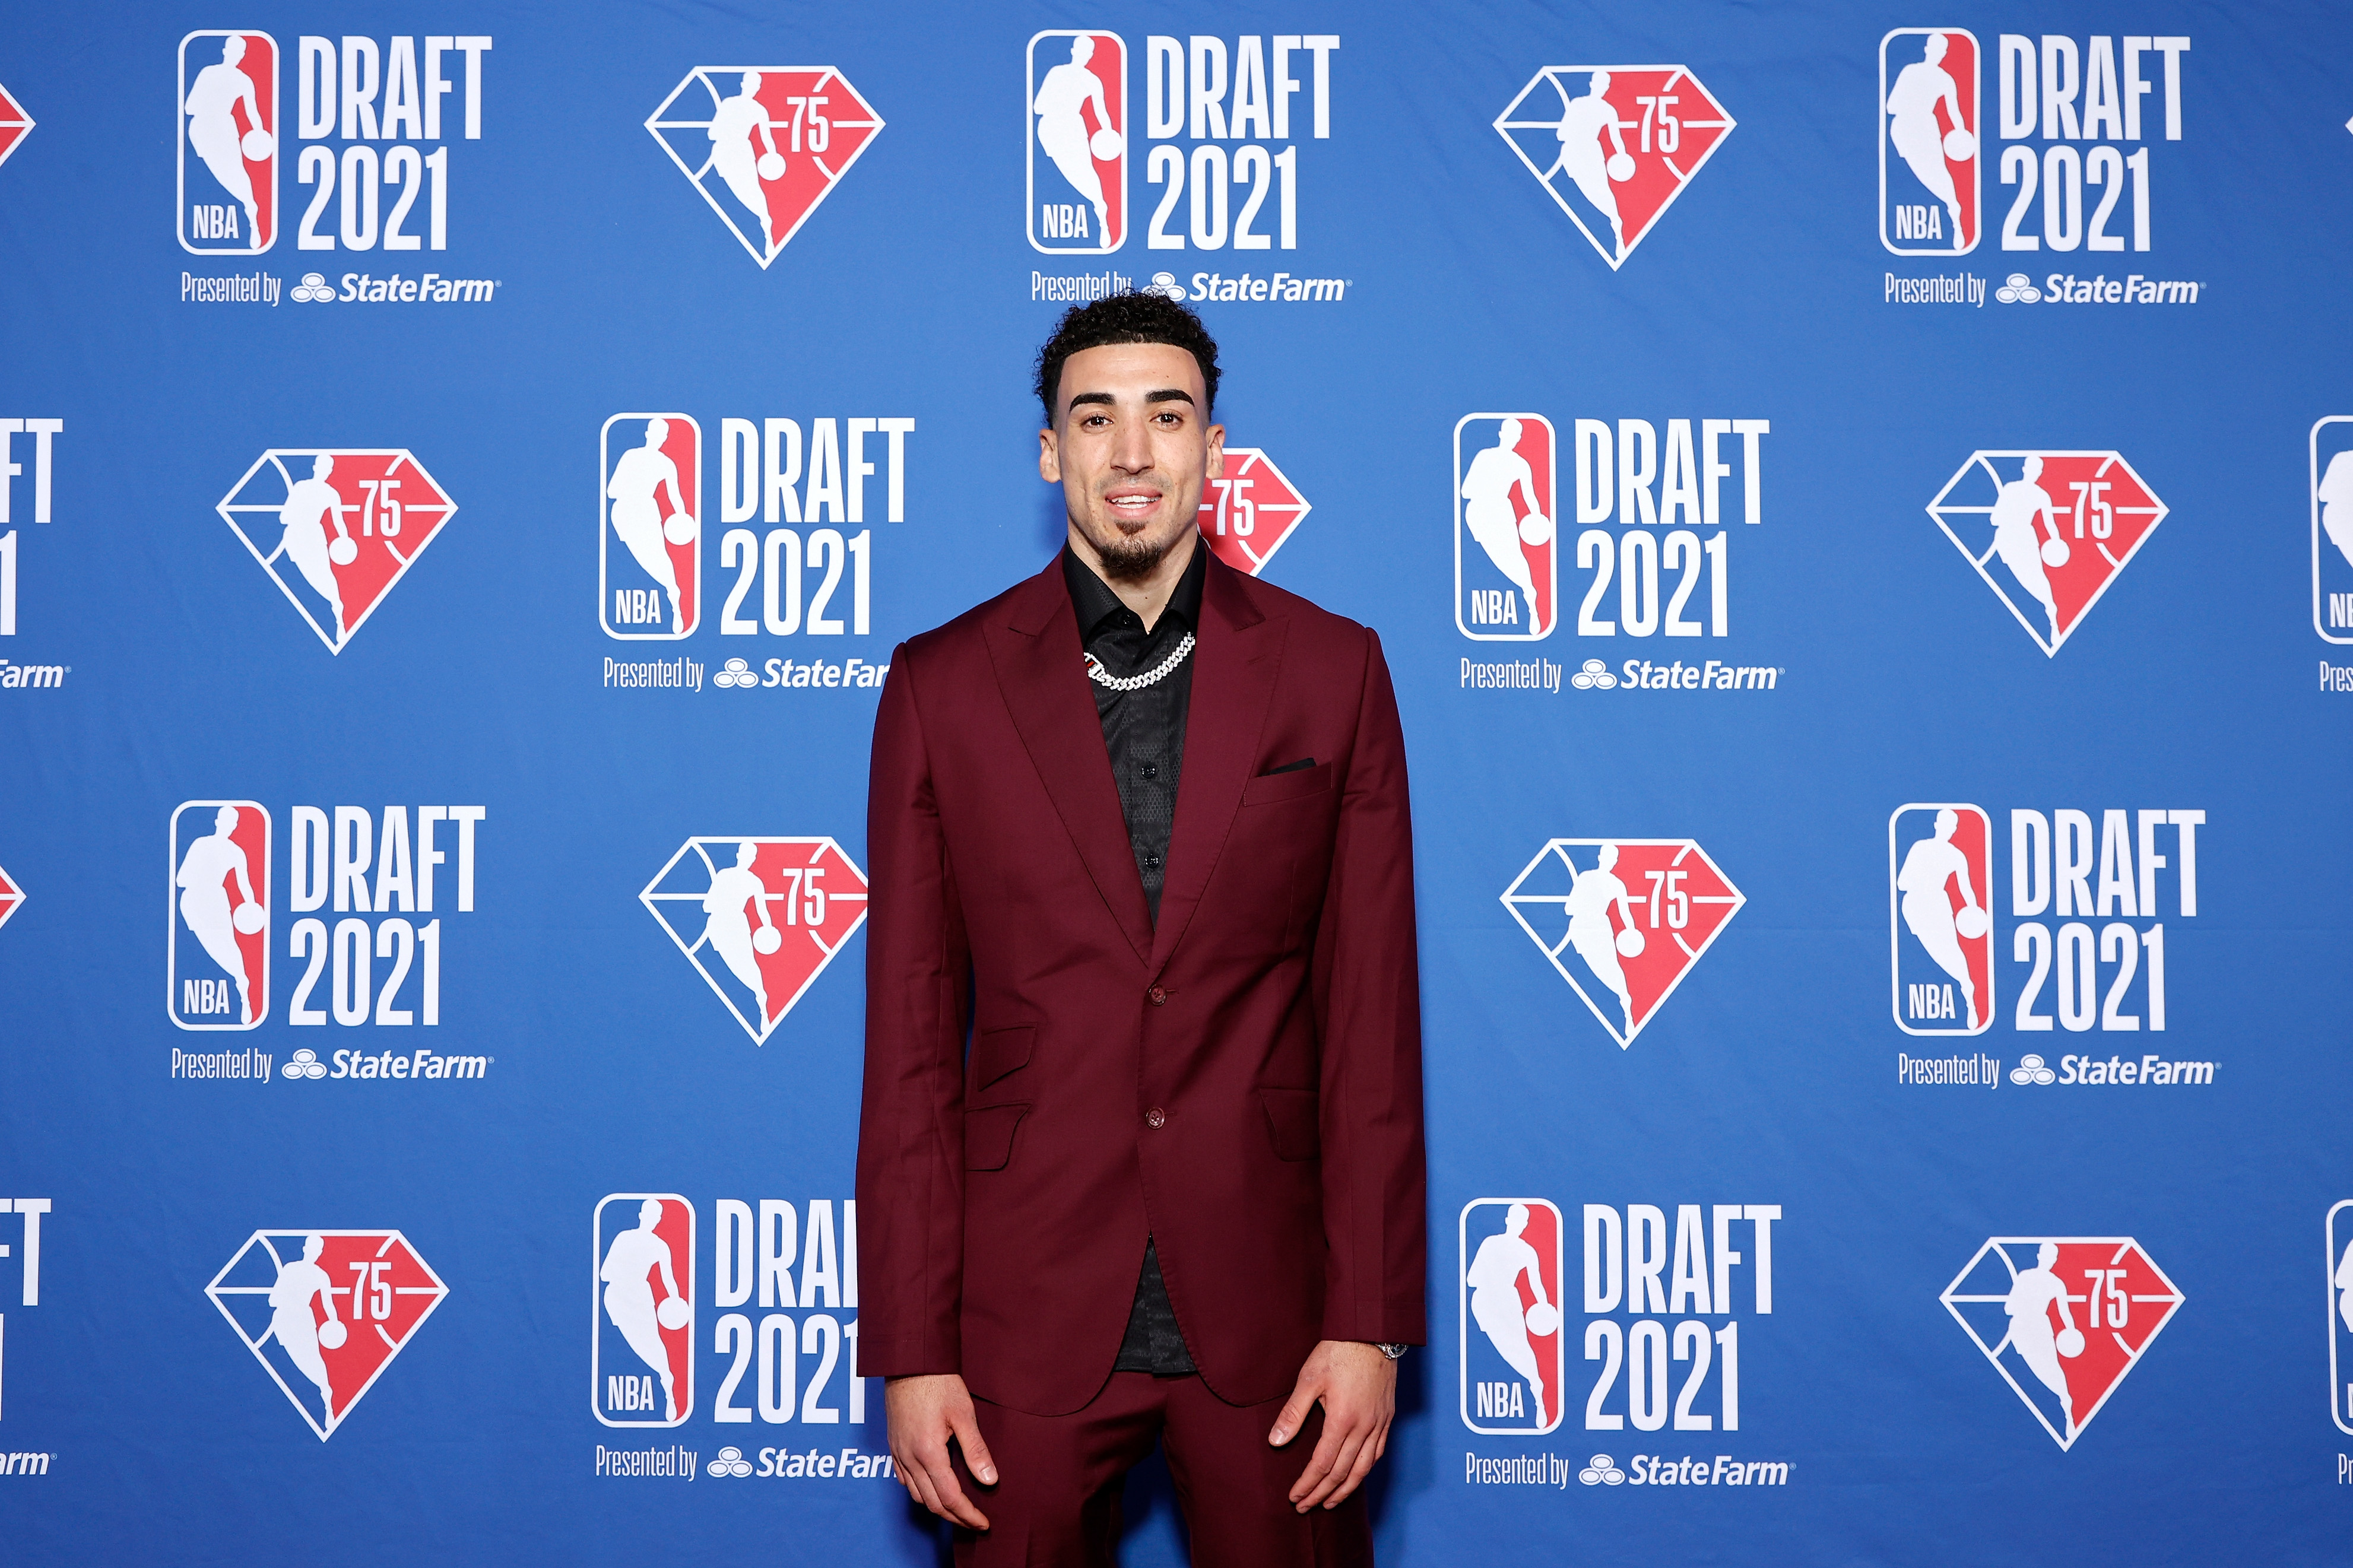 Chris Duarte poses for photos on the red carpet during the 2021 NBA Draft at the Barclays Center on July 29, 2021 in New York City.